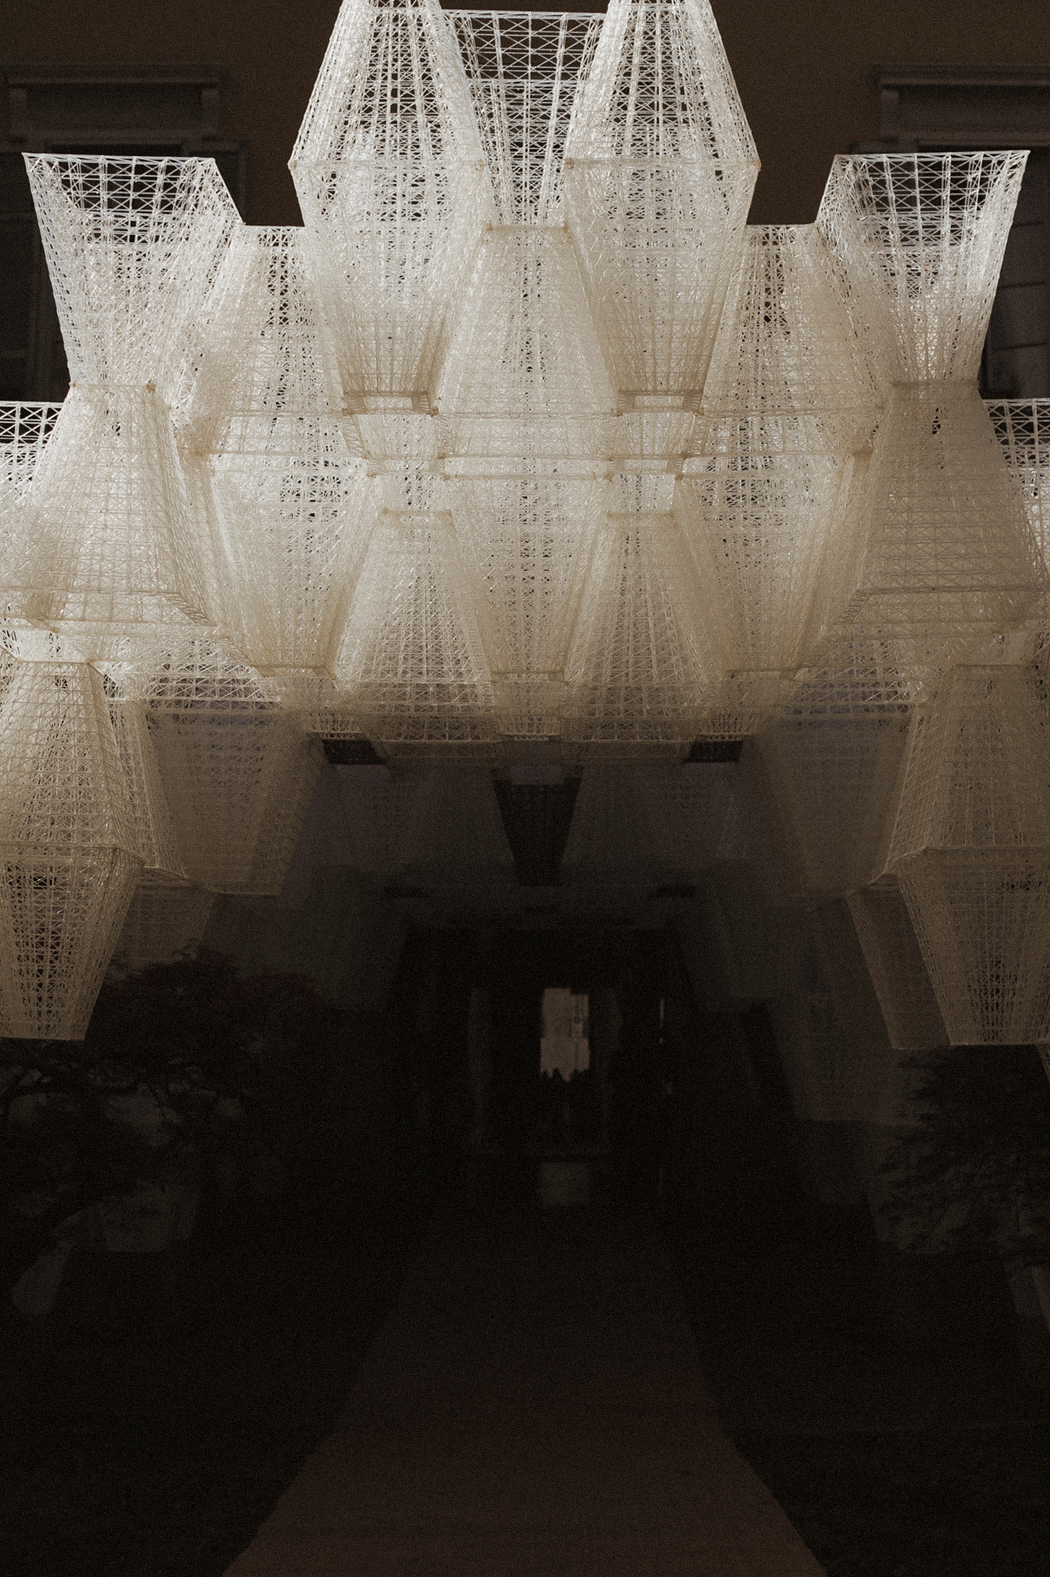 COS presents 'Conifera' - An Installation by Architect Mamou-Mani. By Fiona Dinkelbach